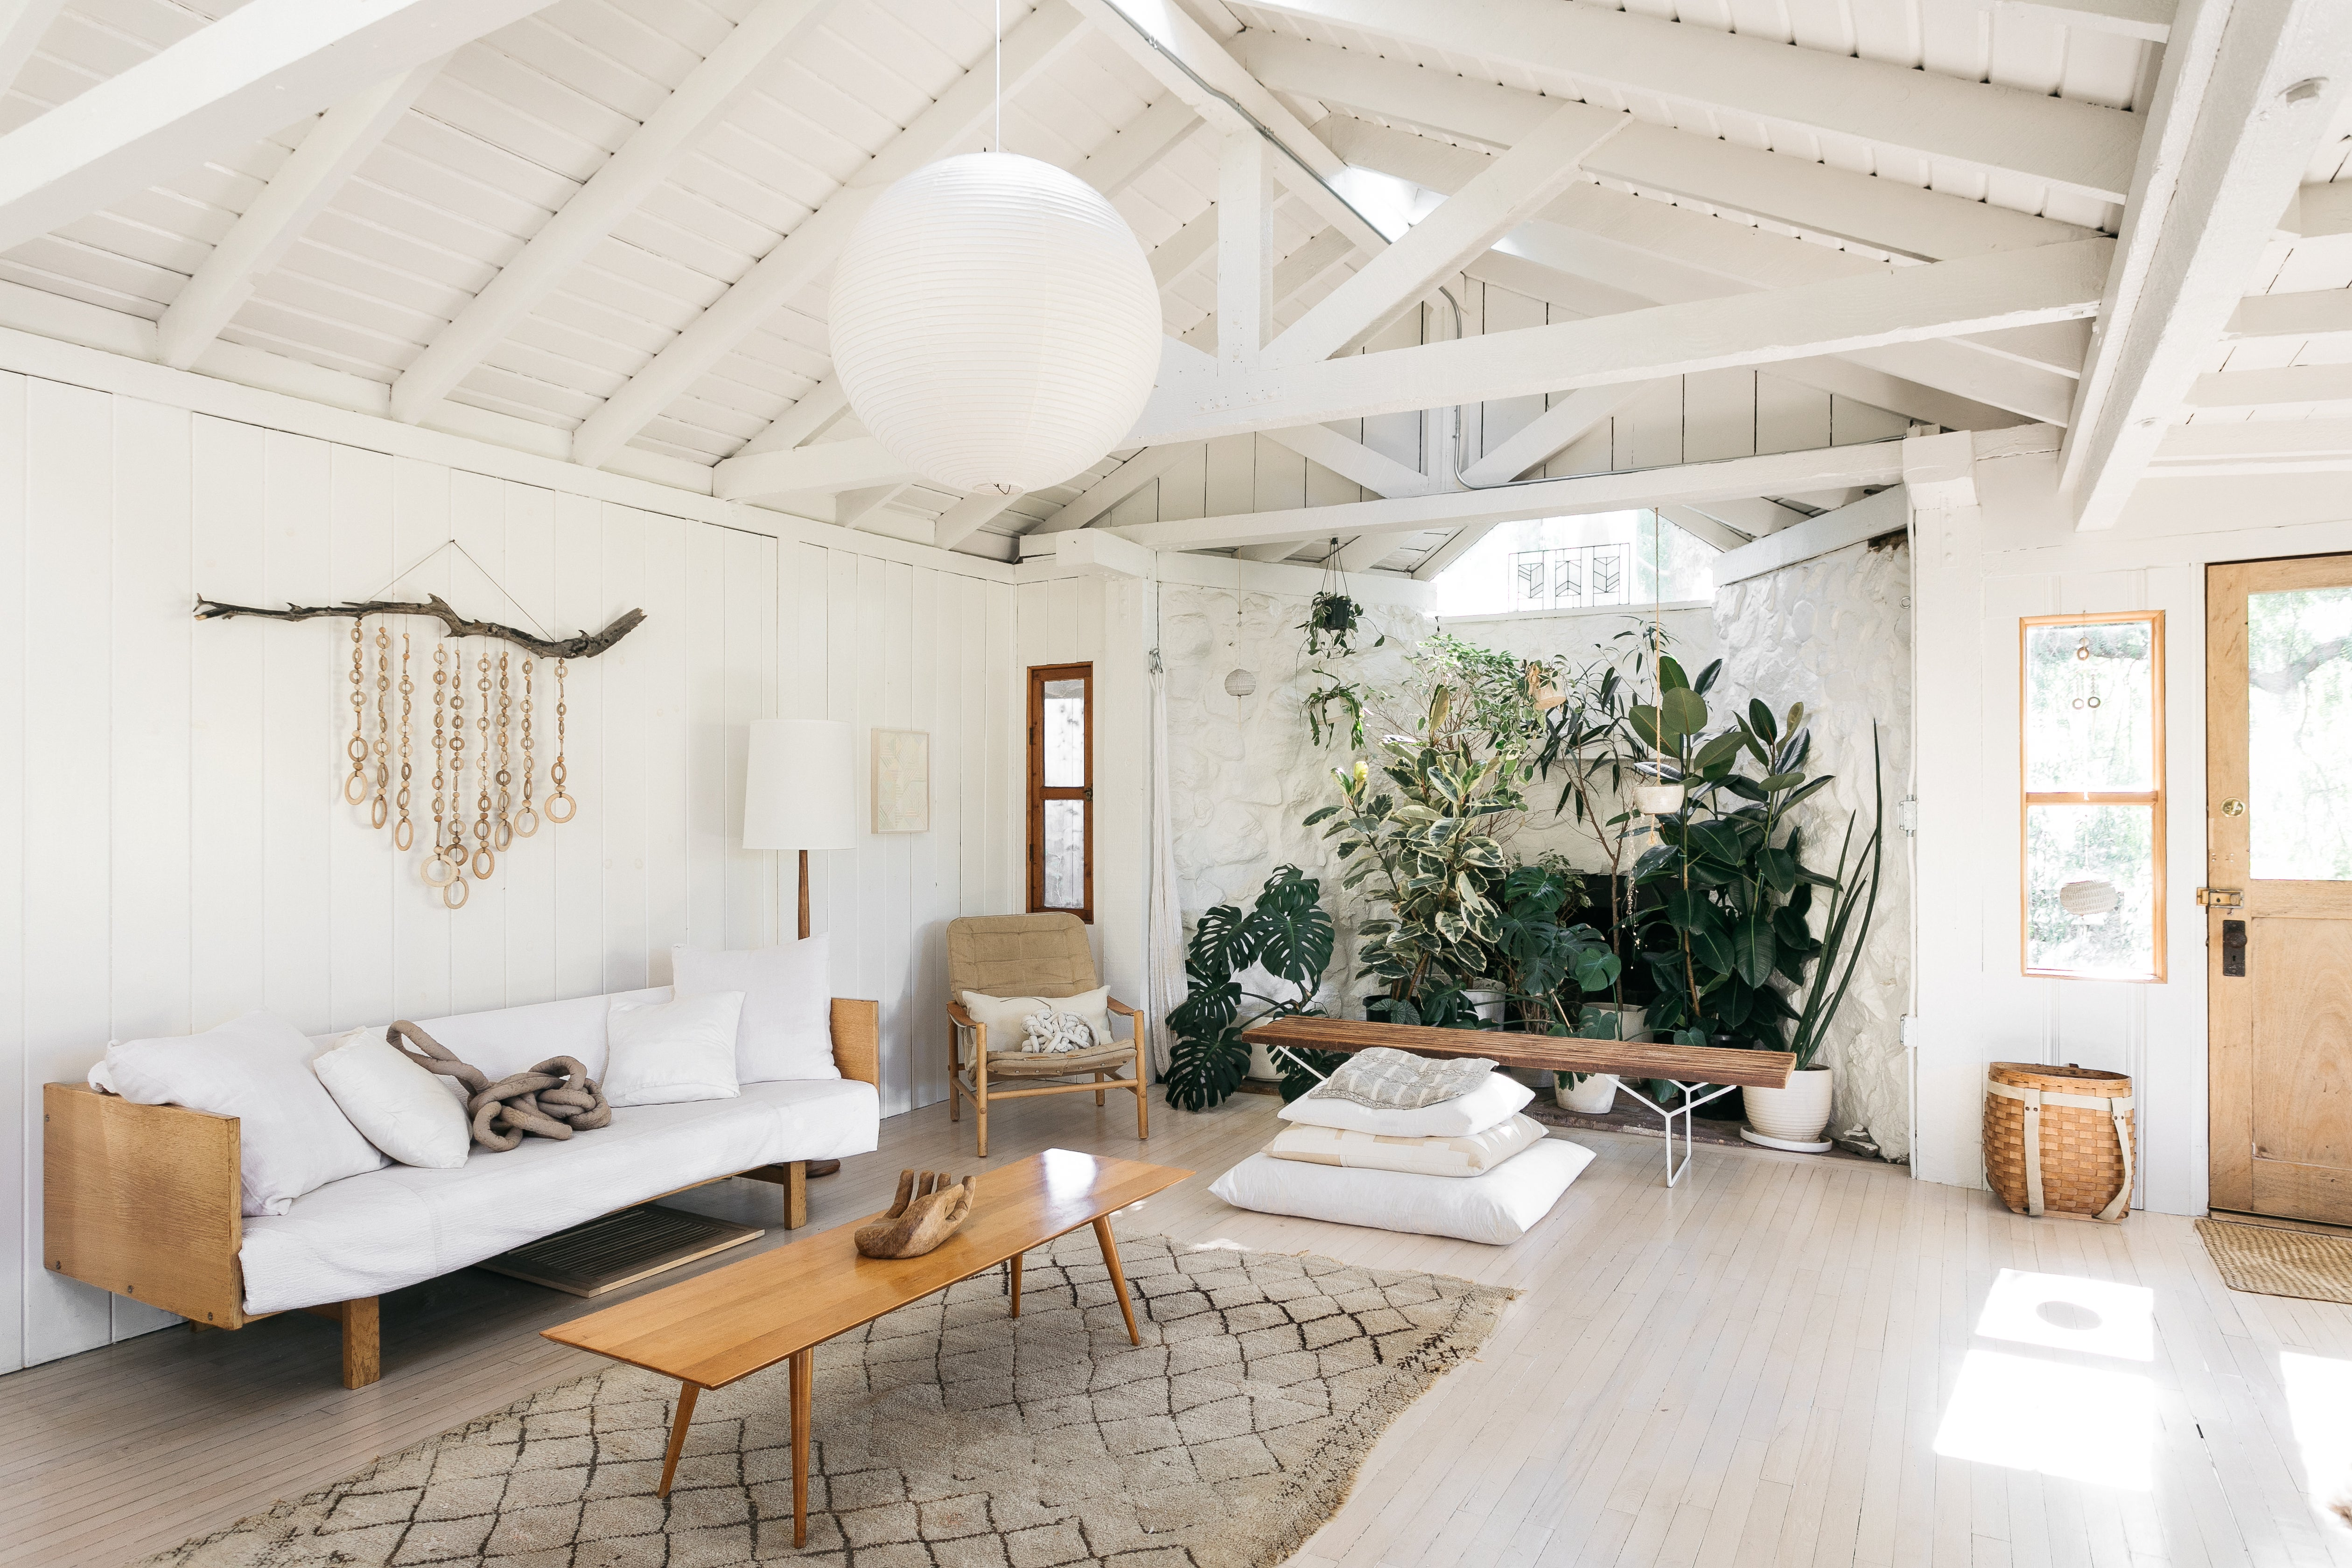 Our Dream House Is for Sale, But These Design Ideas Are Free